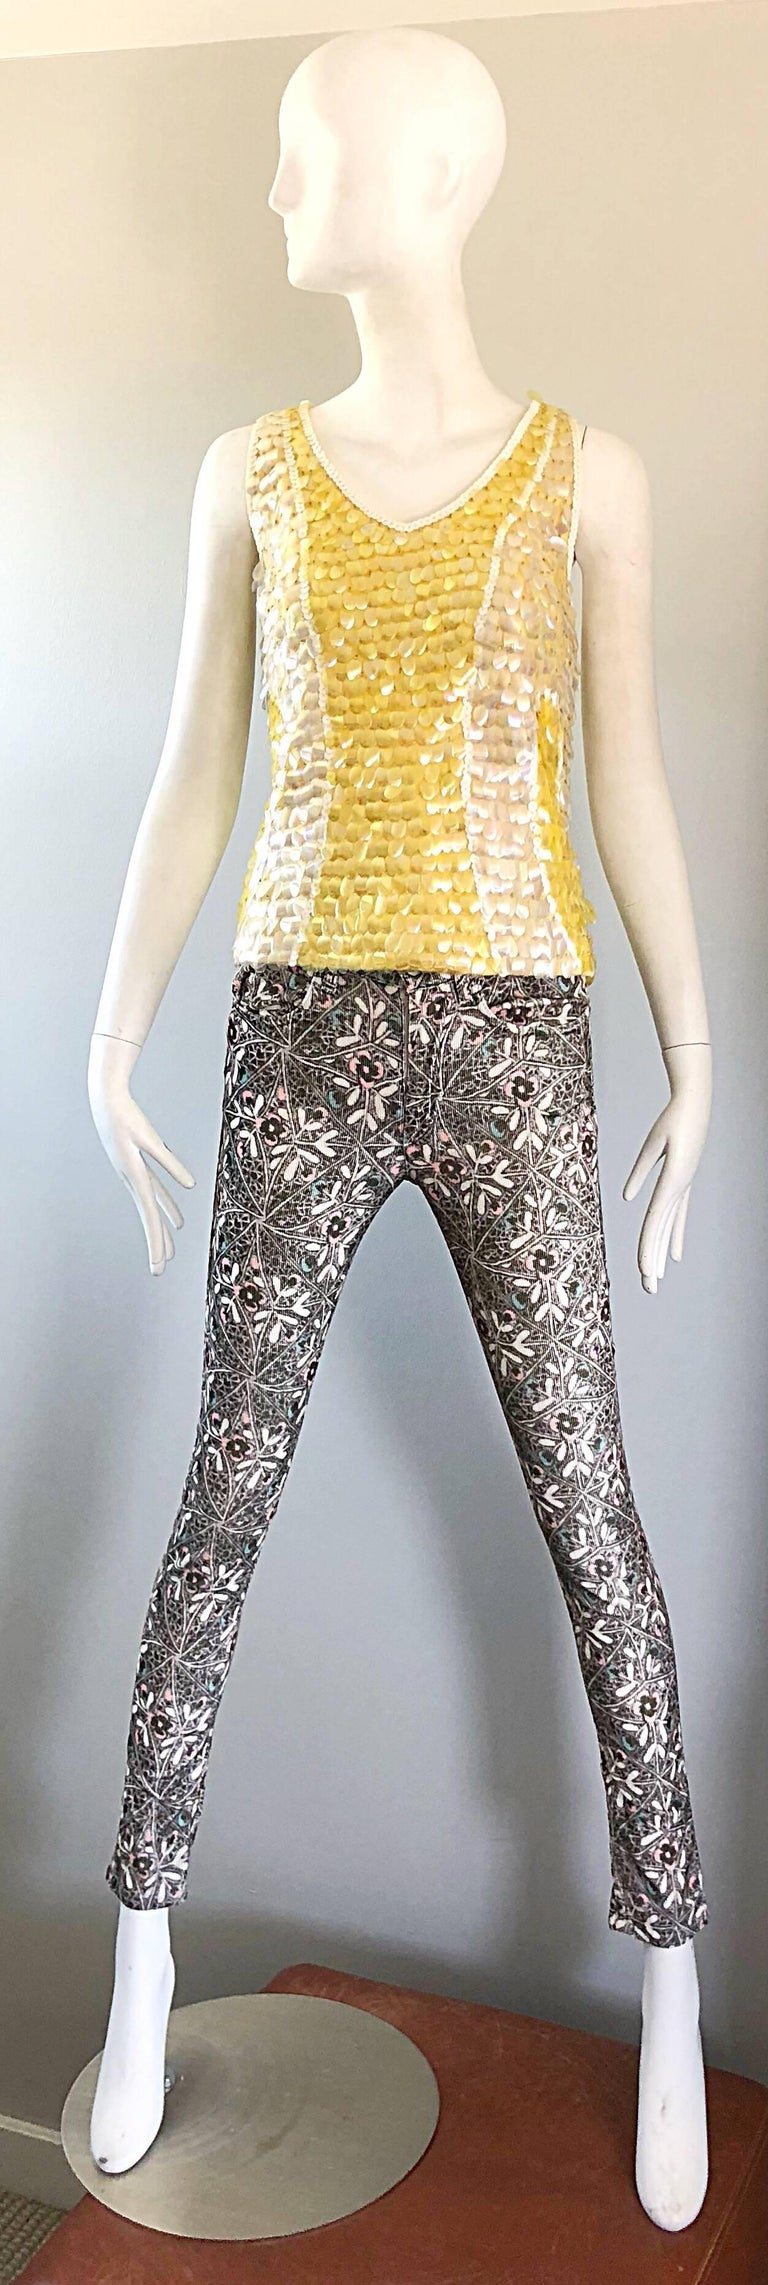 Women's 1960s Yellow + White + Clear Paillettes Sequined Lamb's Wool Sleeveless 60s Top For Sale